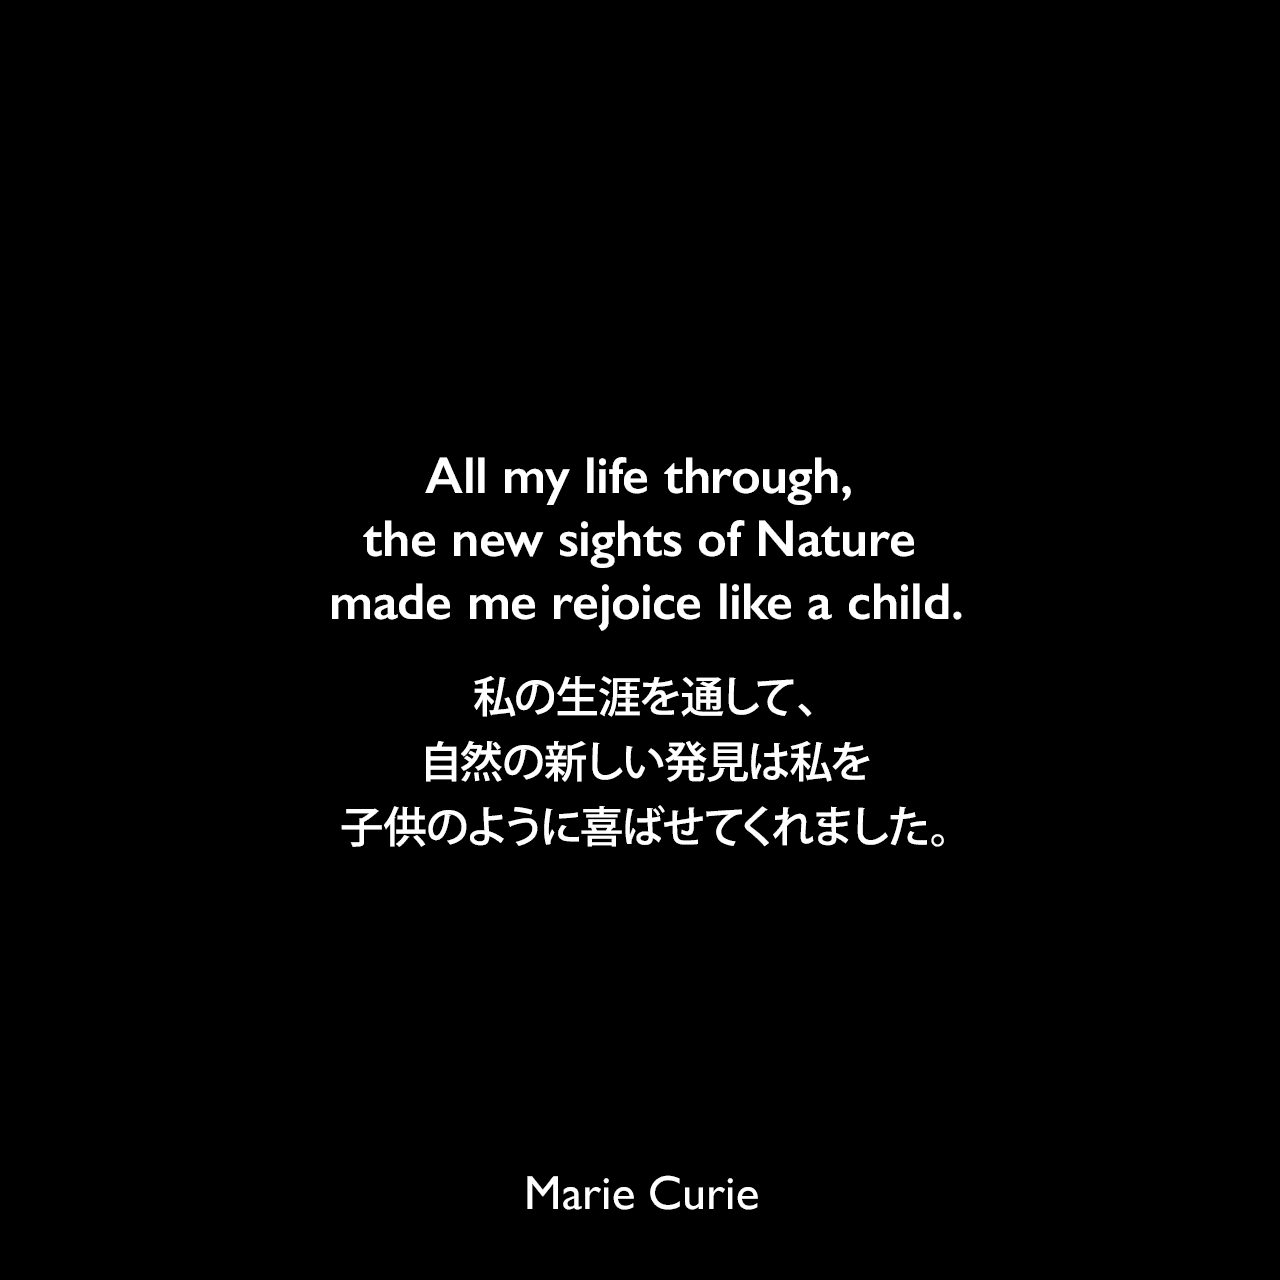 All my life through, the new sights of Nature made me rejoice like a child.私の生涯を通して、自然の新しい発見は私を子供のように喜ばせてくれました。Marie Curie